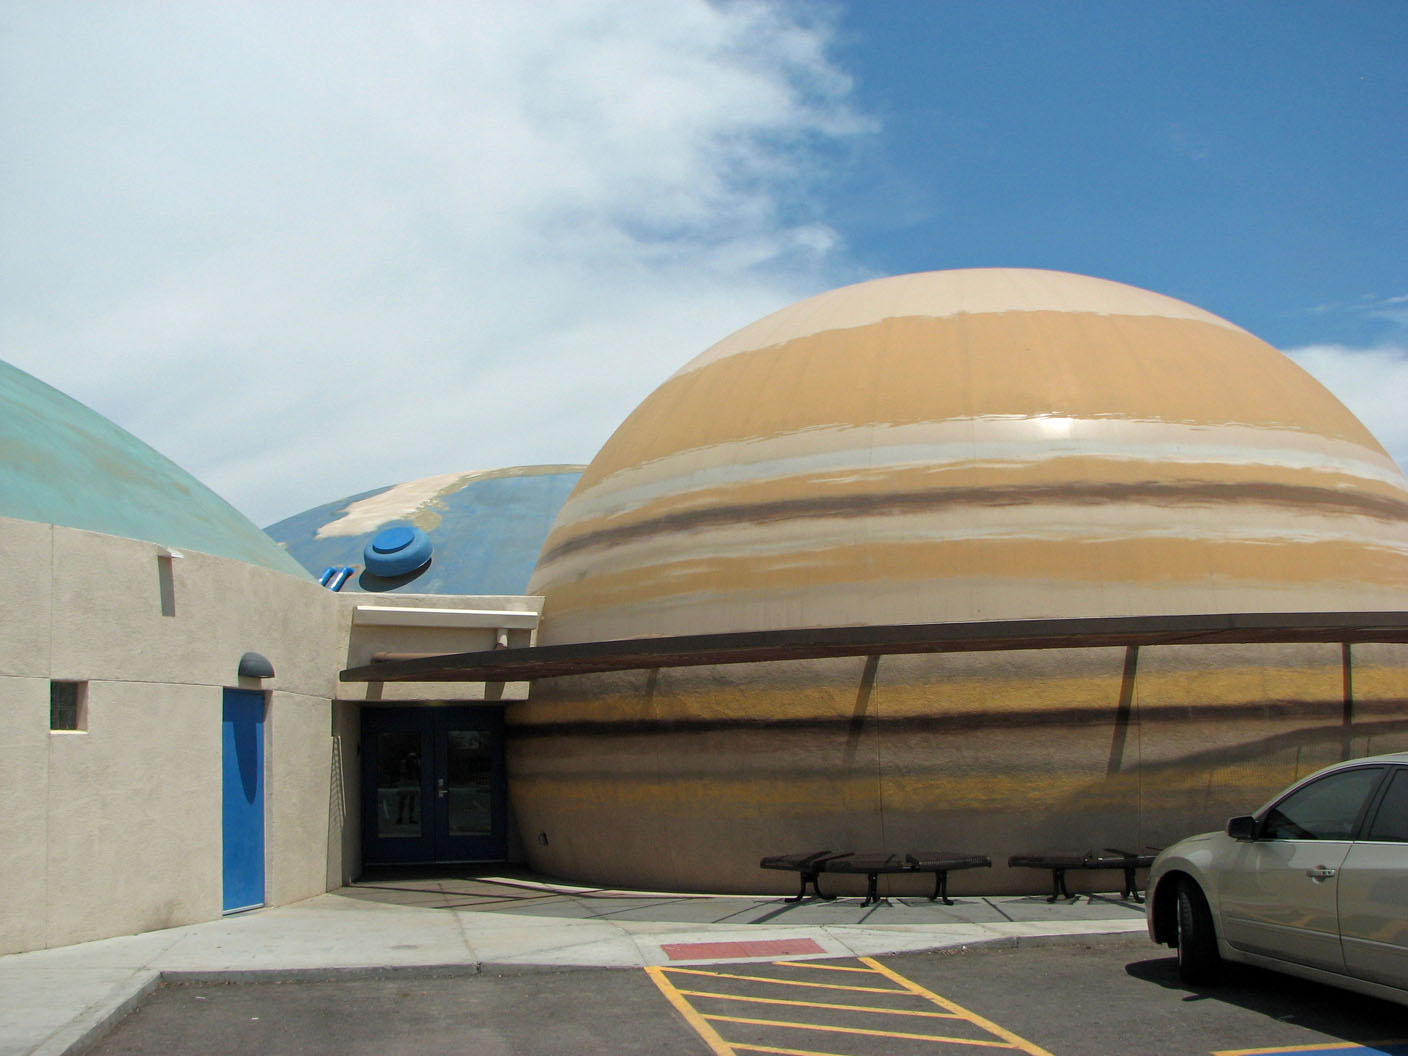 Buildings at Robert L. Duffy High School in Phoenix are painted like planets. Photo Credit: Sam Lowe